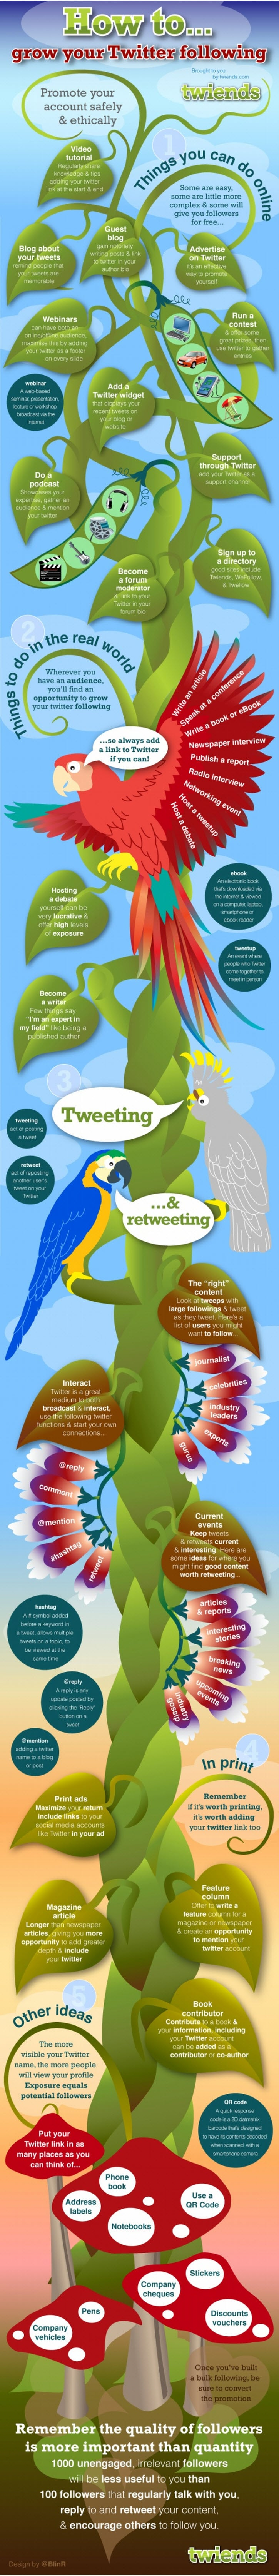 increase-your-twitter-followers-infographic